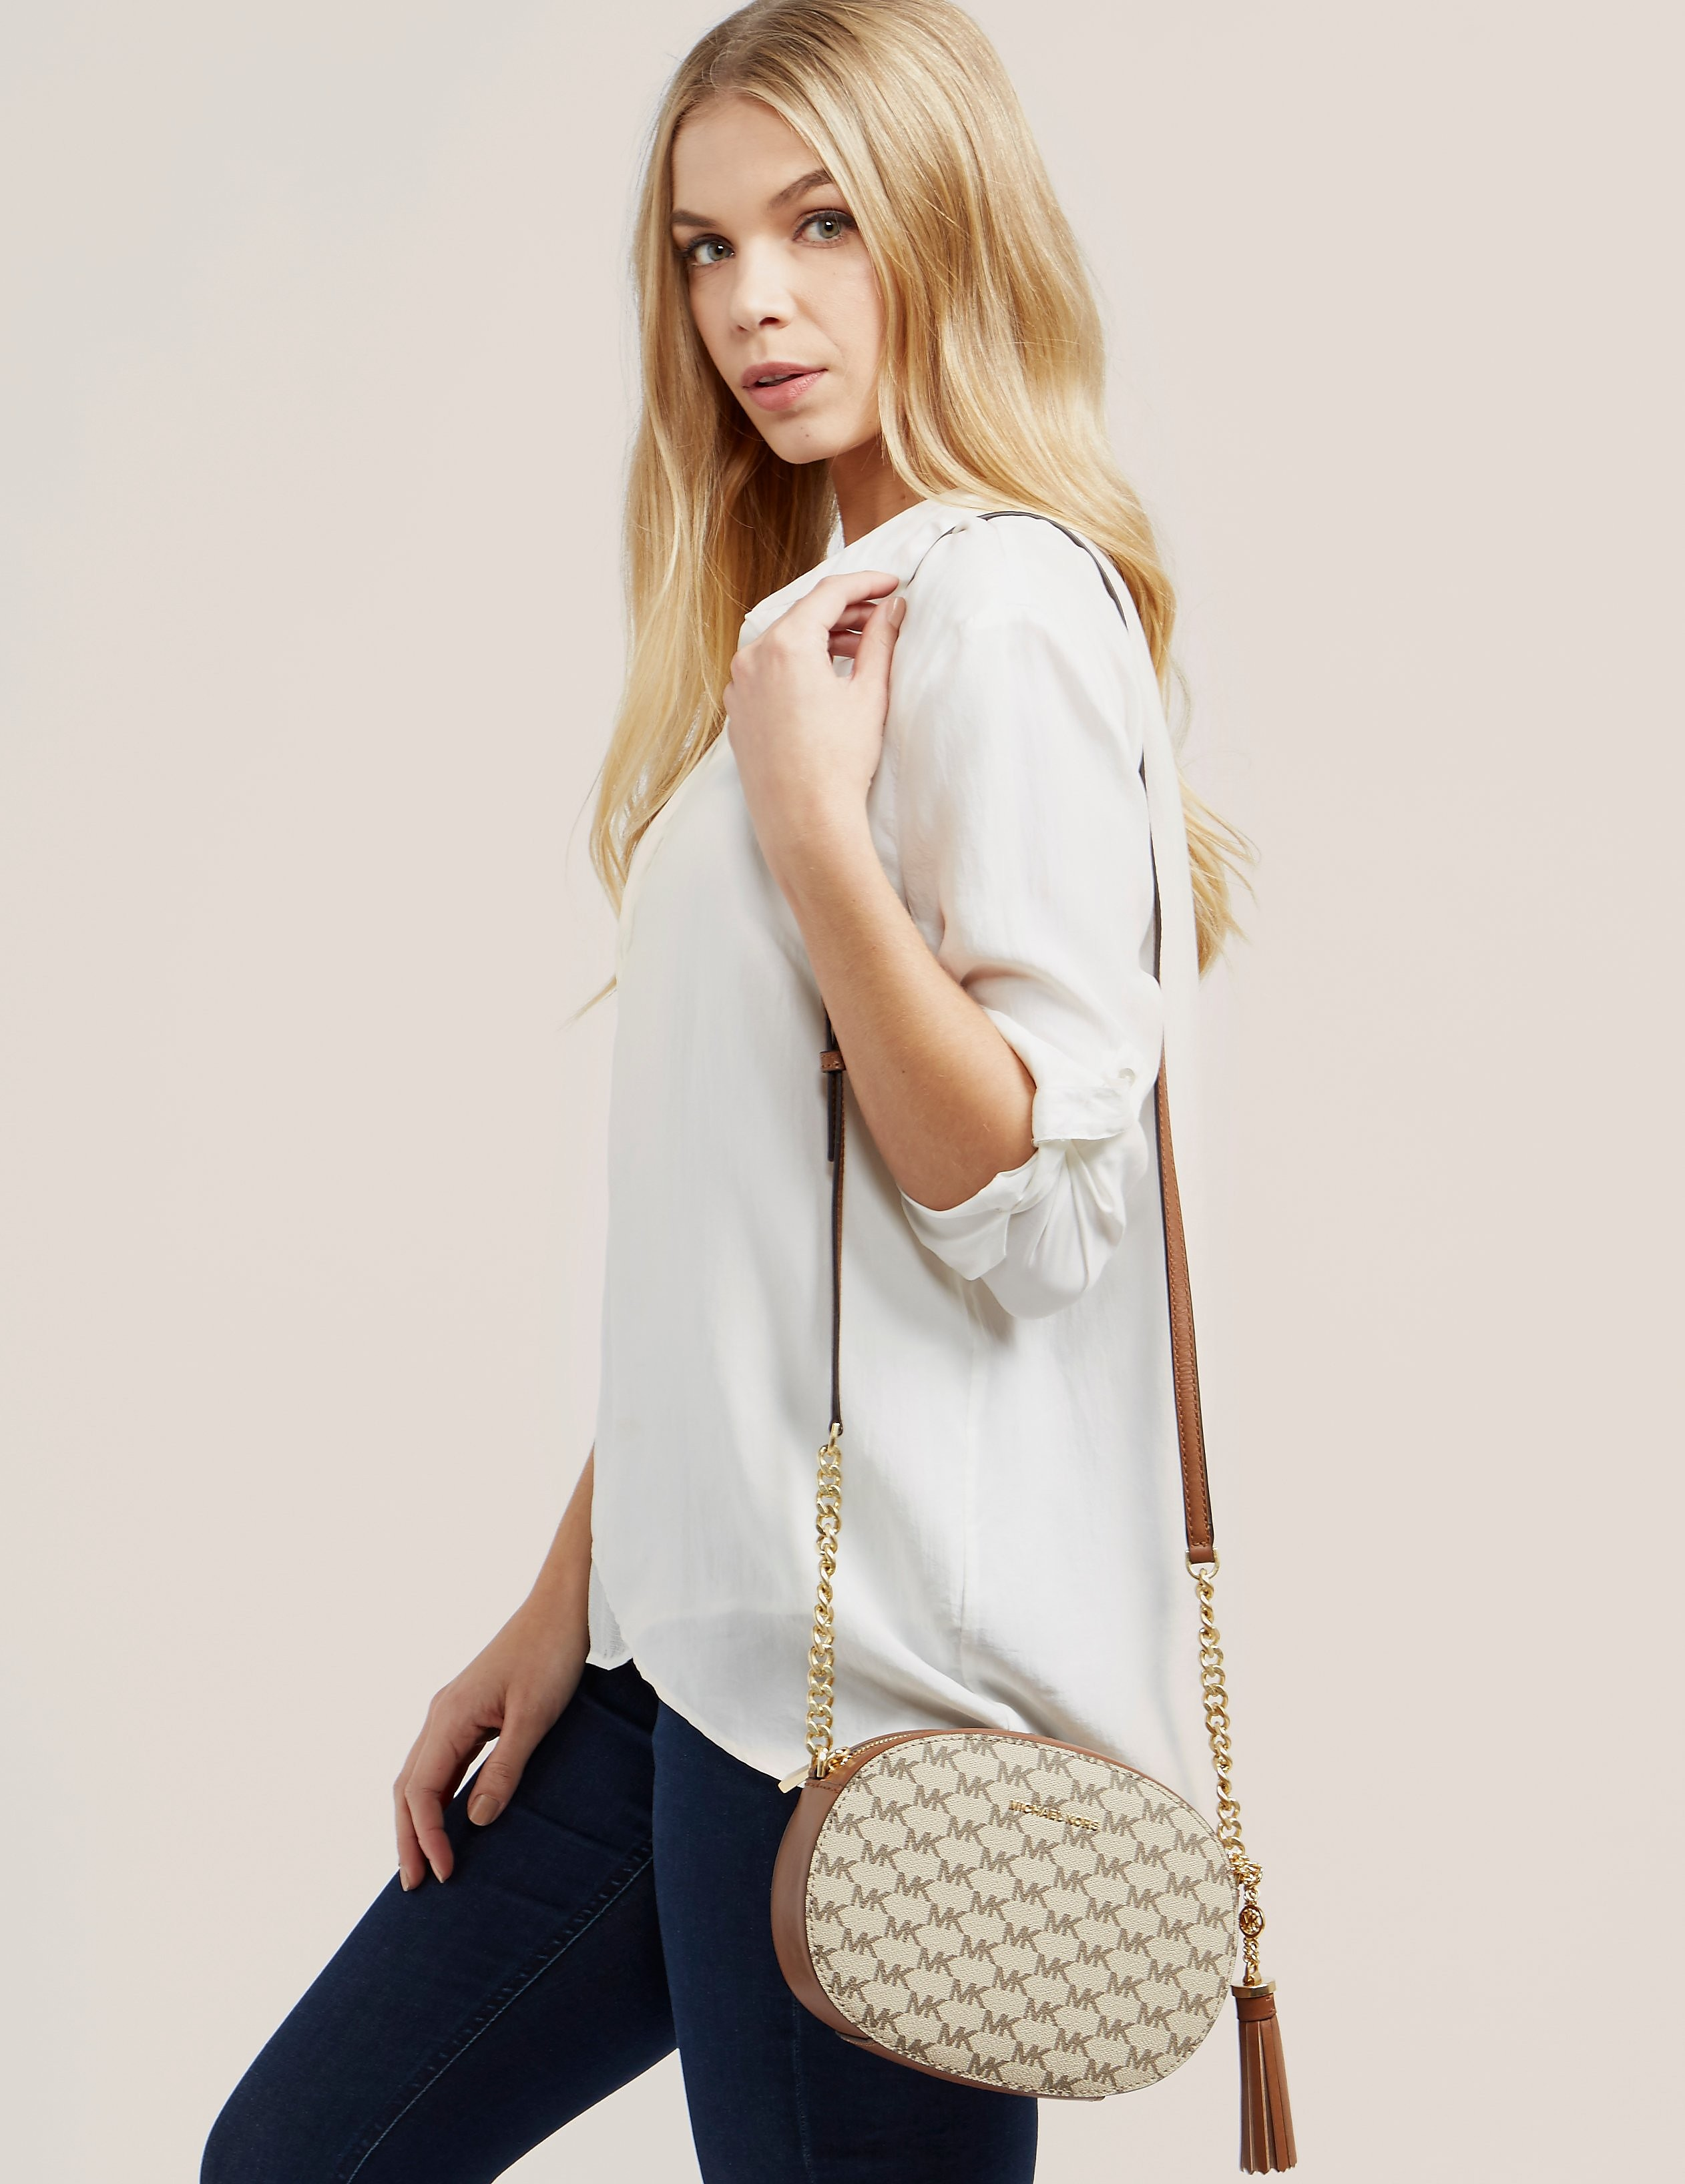 Michael Kors Ginny Medium Logo Crossbody Bag